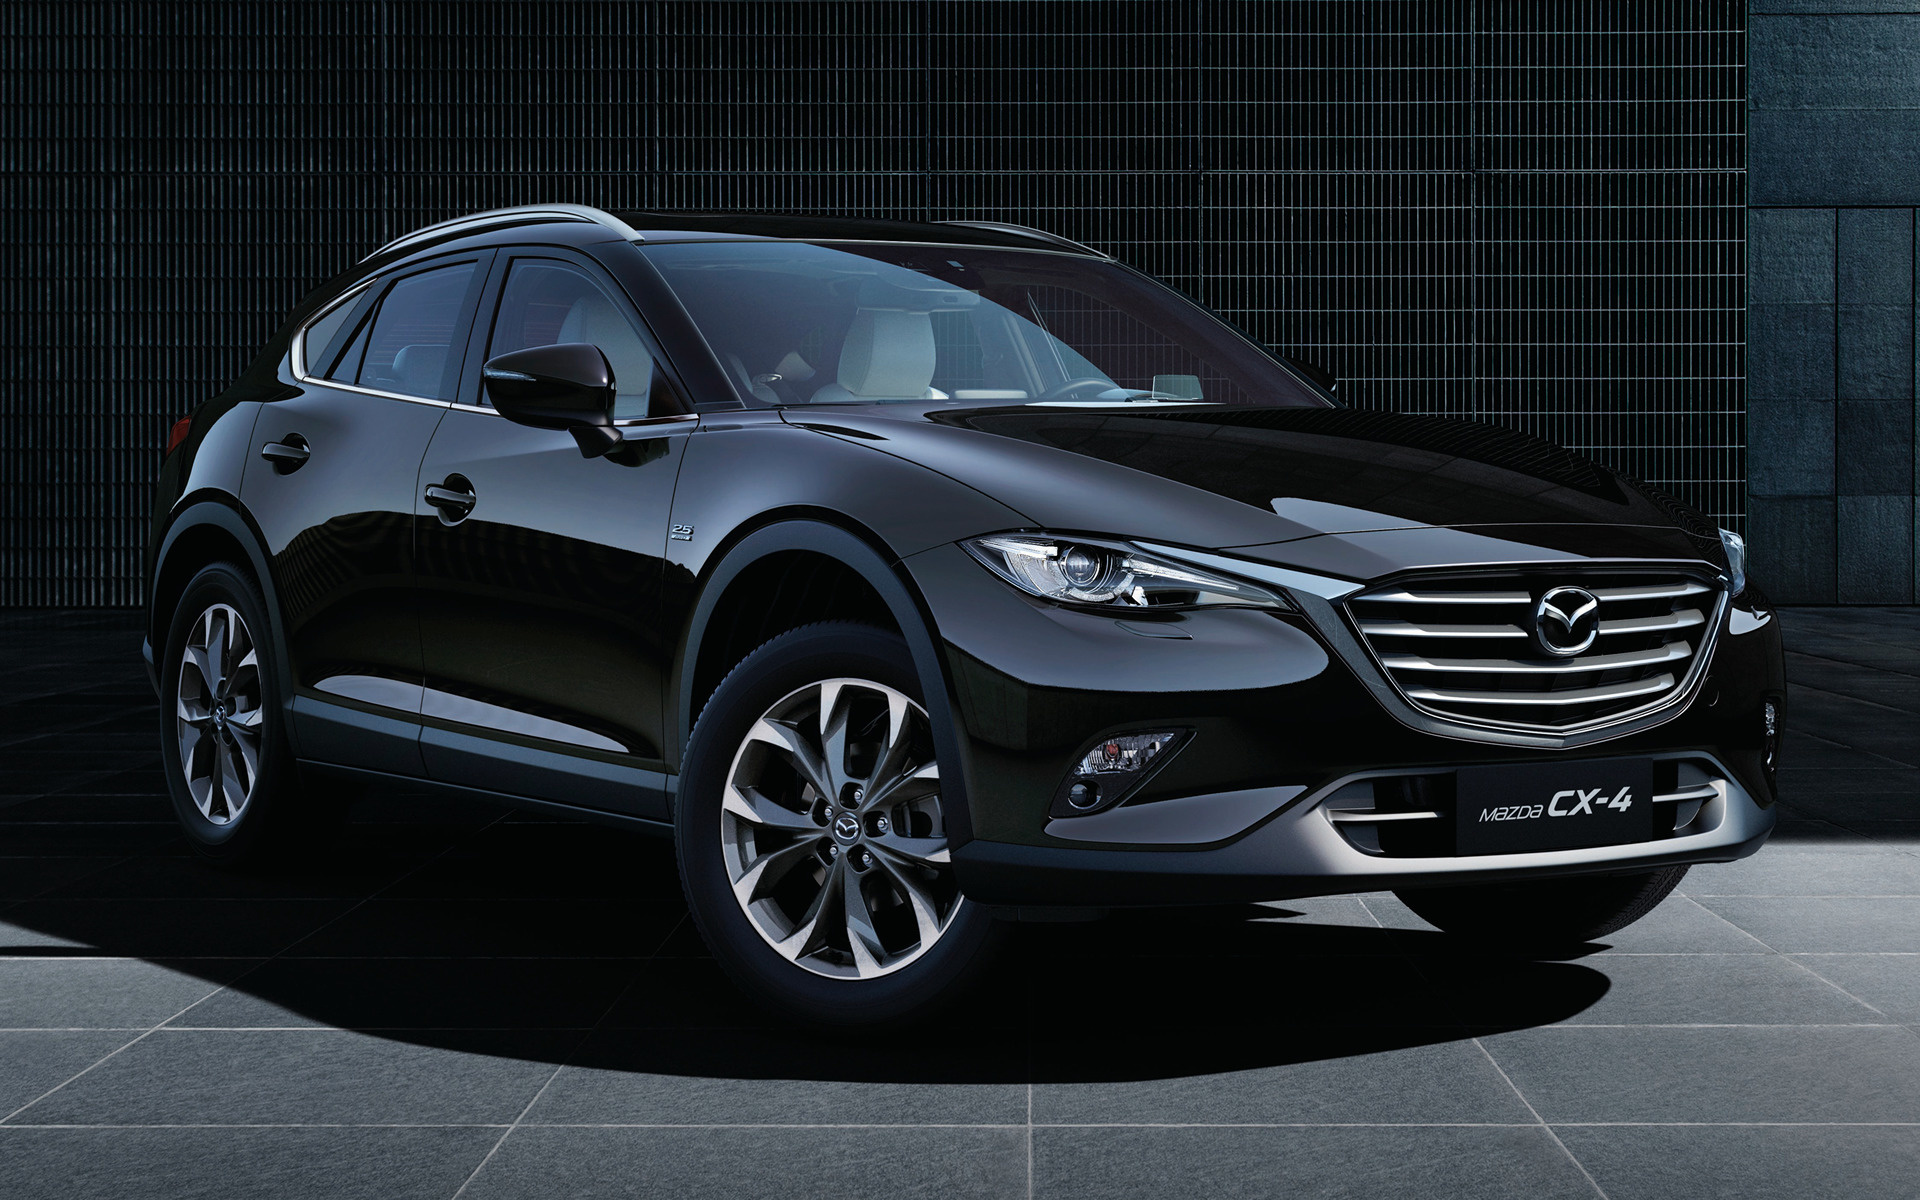 2016 Mazda Cx 4 Wallpapers And Hd Images Car Pixel